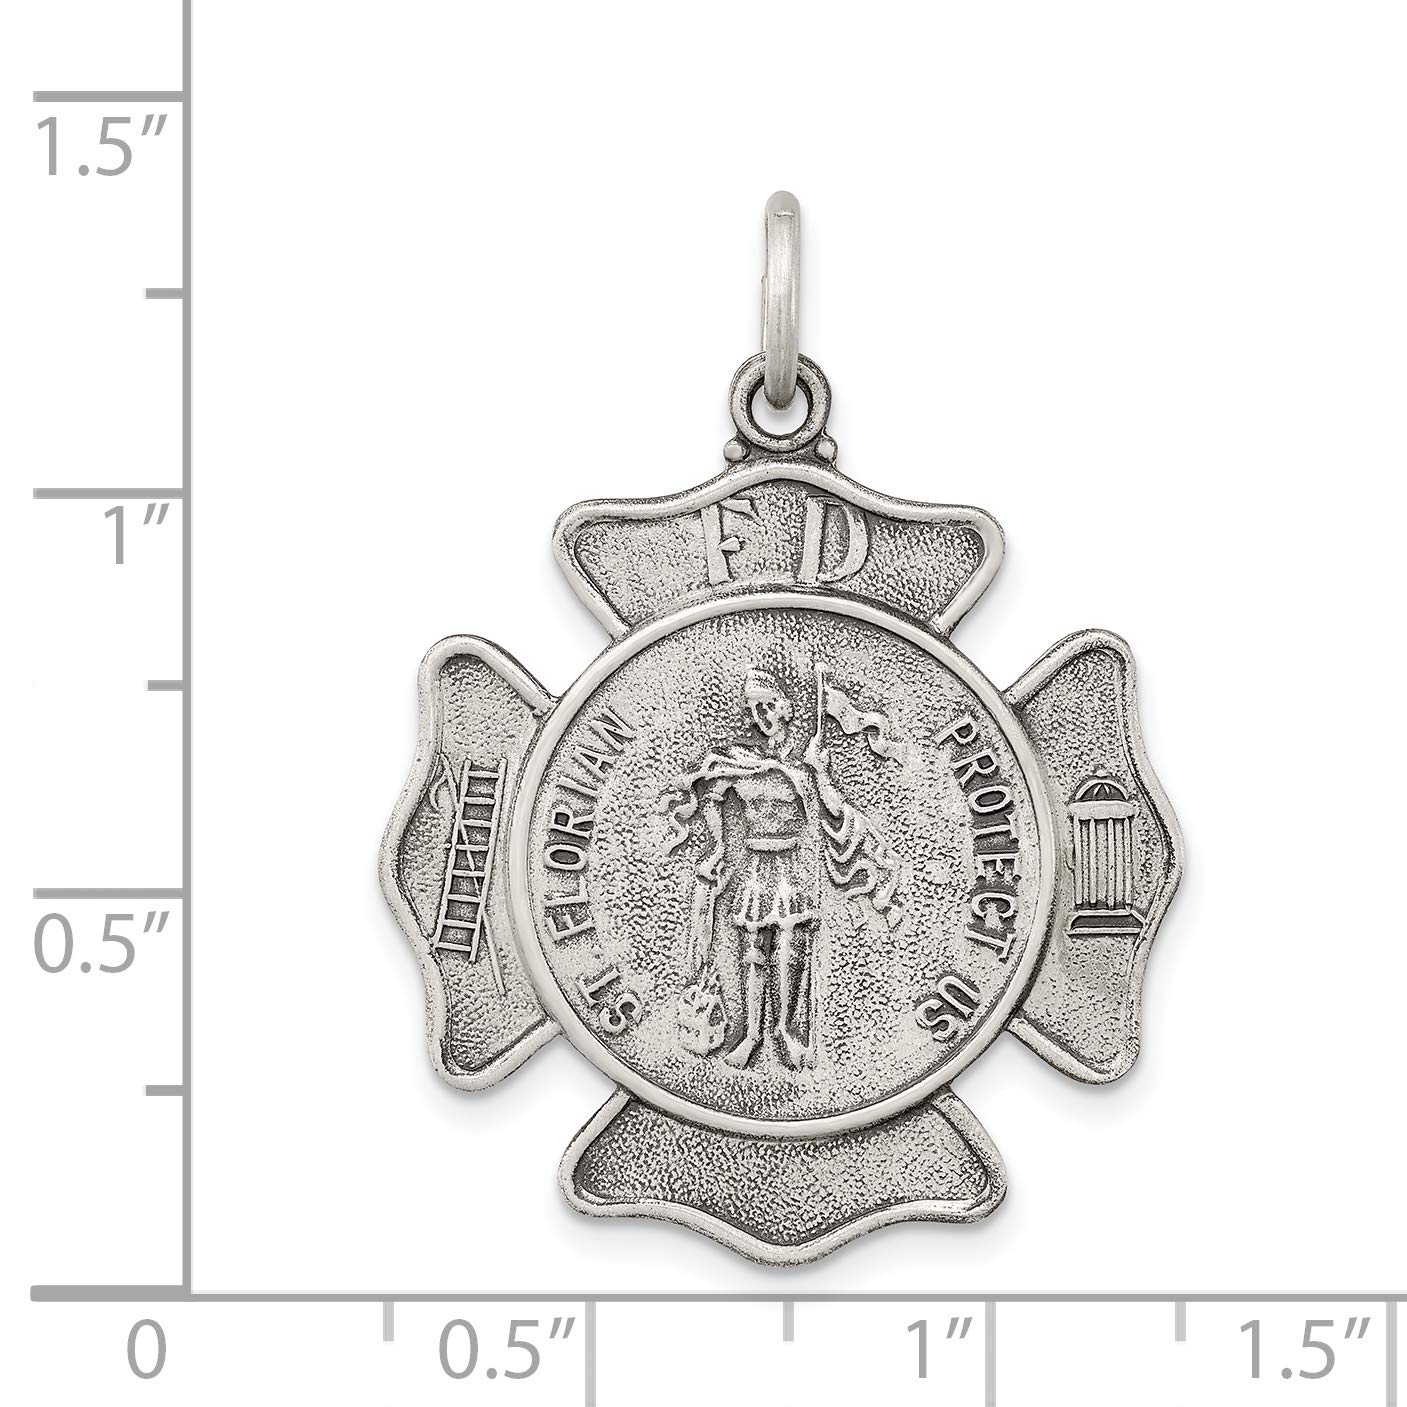 Protect Us Words On Saint Florian Firefighter Badge Charm In Antiqued 925 Sterling Silver 35x27mm